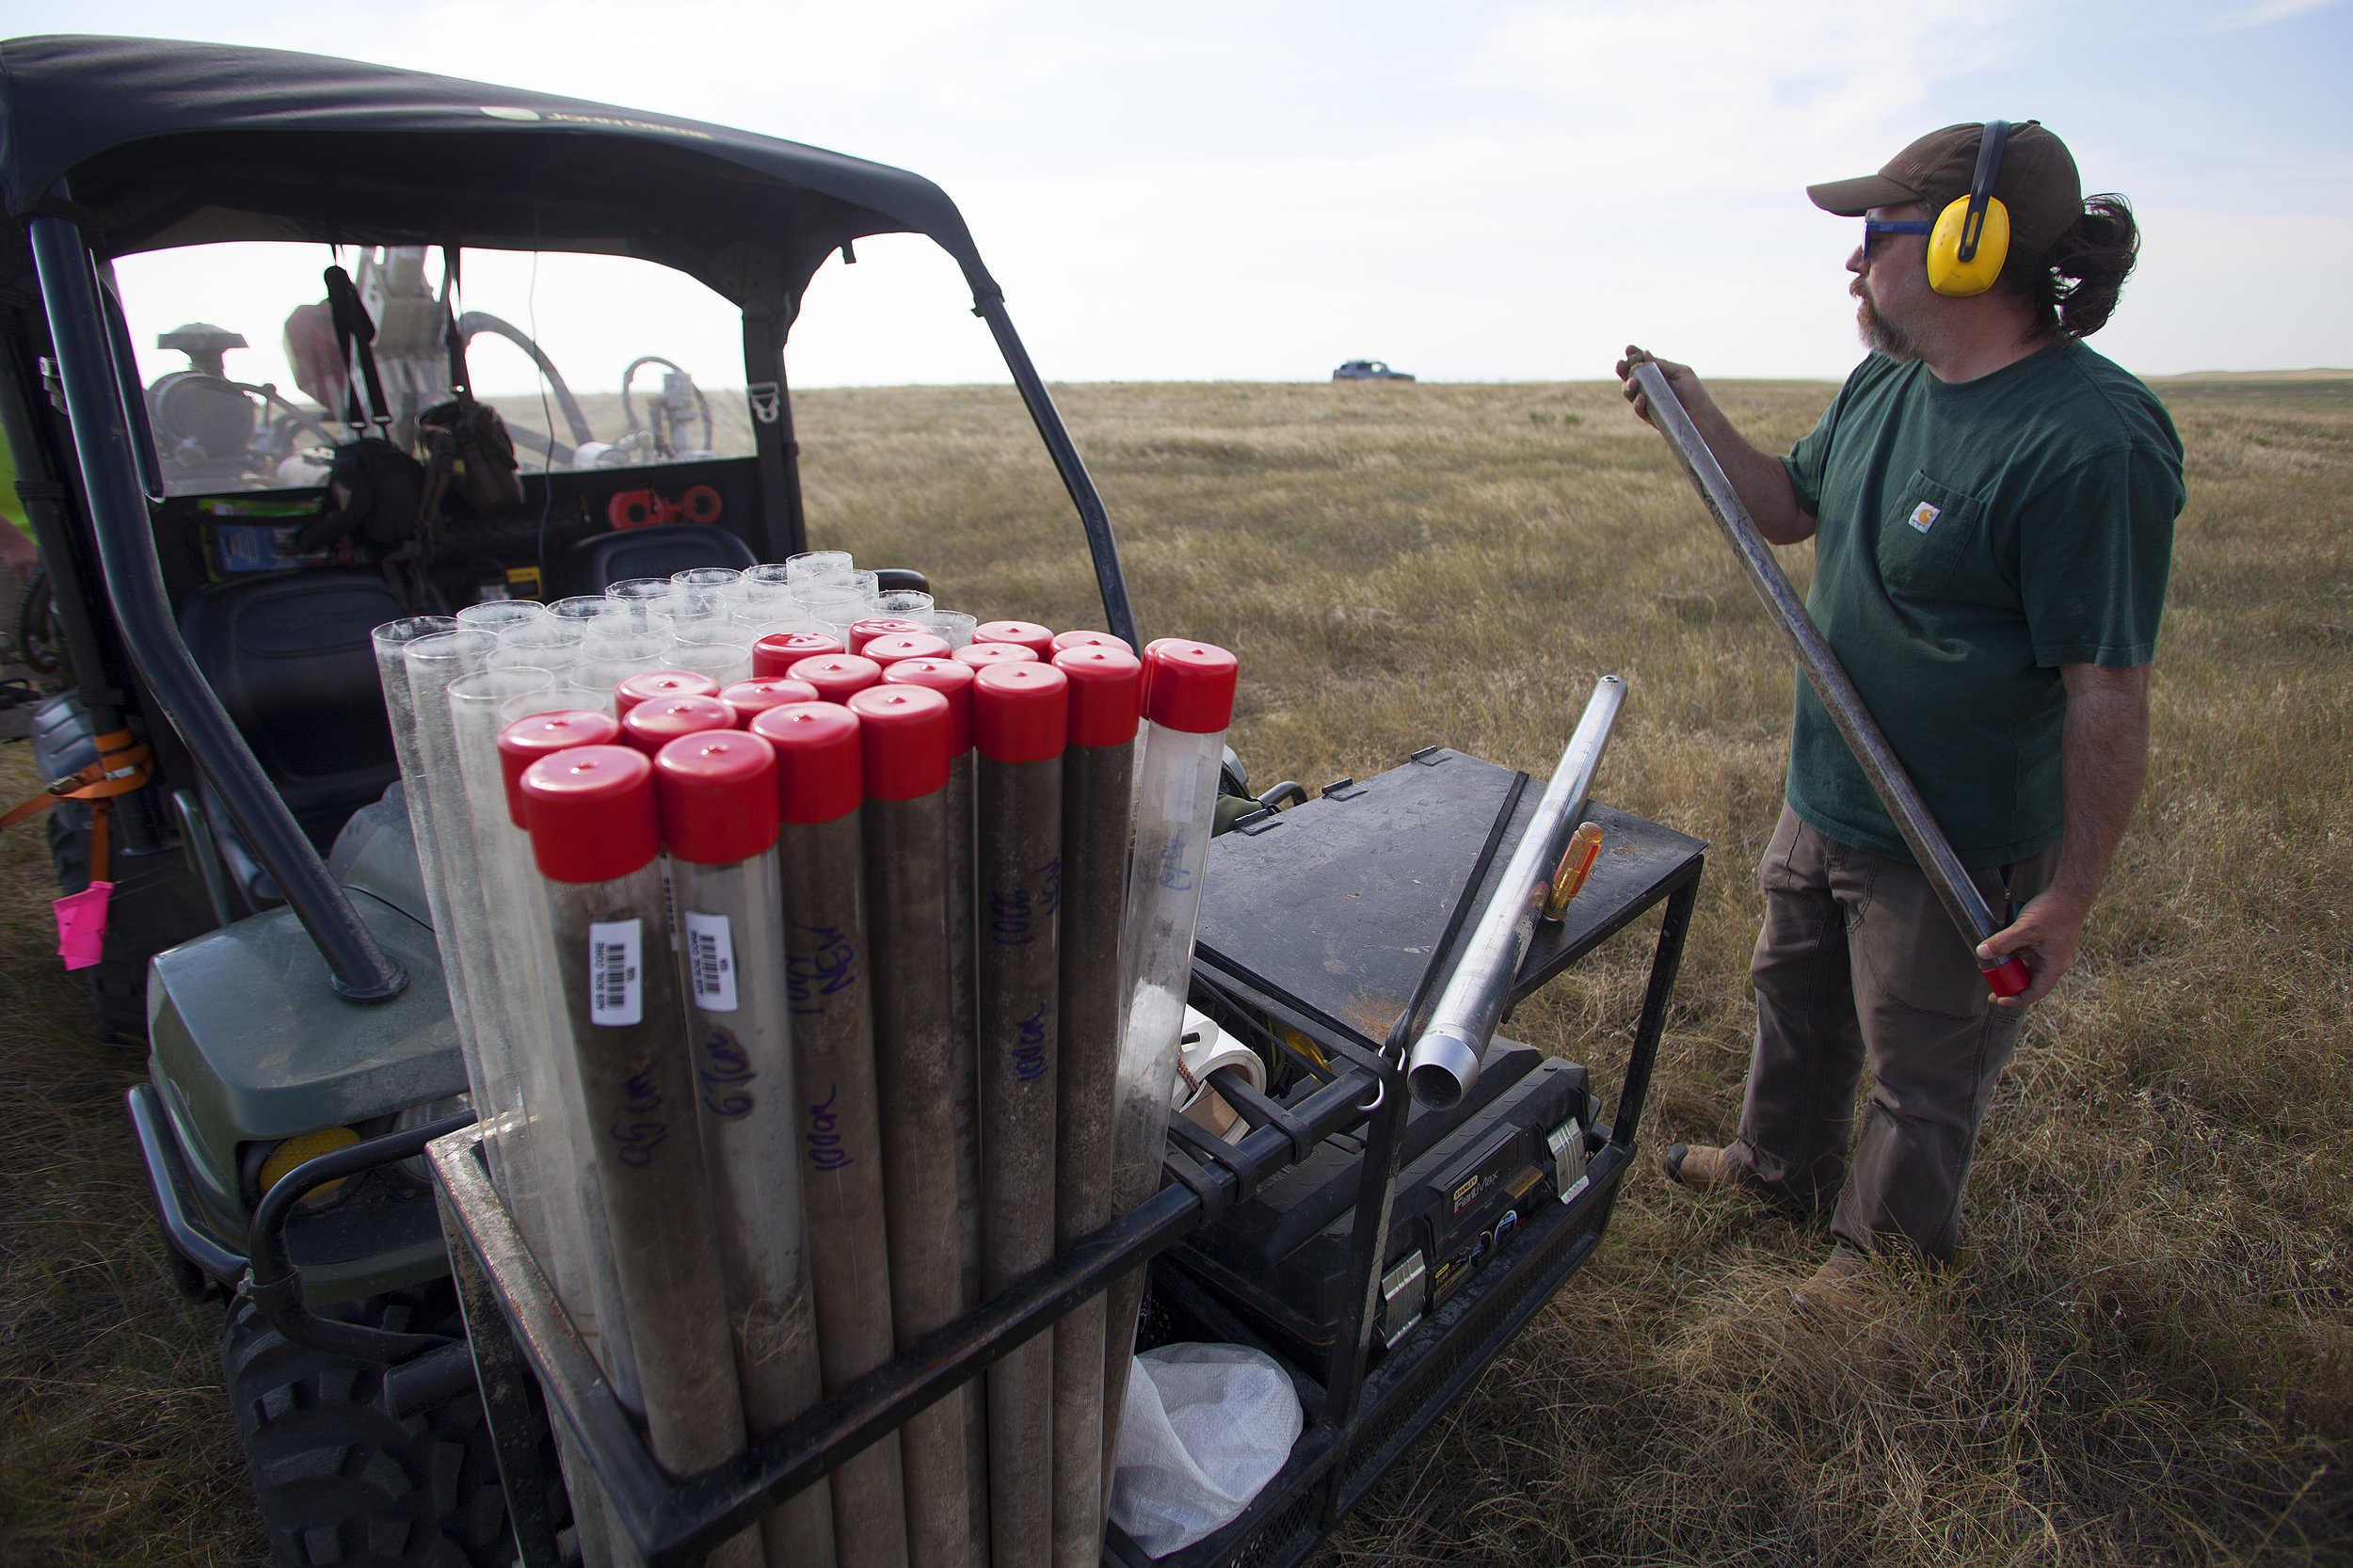 Ry Thompson, of Applied Ecological Services, places a sample of soil in a carrying tube to be lab tested at the University of Missouri for carbon and bulk density, at the 777 Bison Ranch, in Hermosa, SD. The tests will be conducted by PhD Soil Scientists and will determine the amount of carbon sequestered by tons per acre on the Ranch.